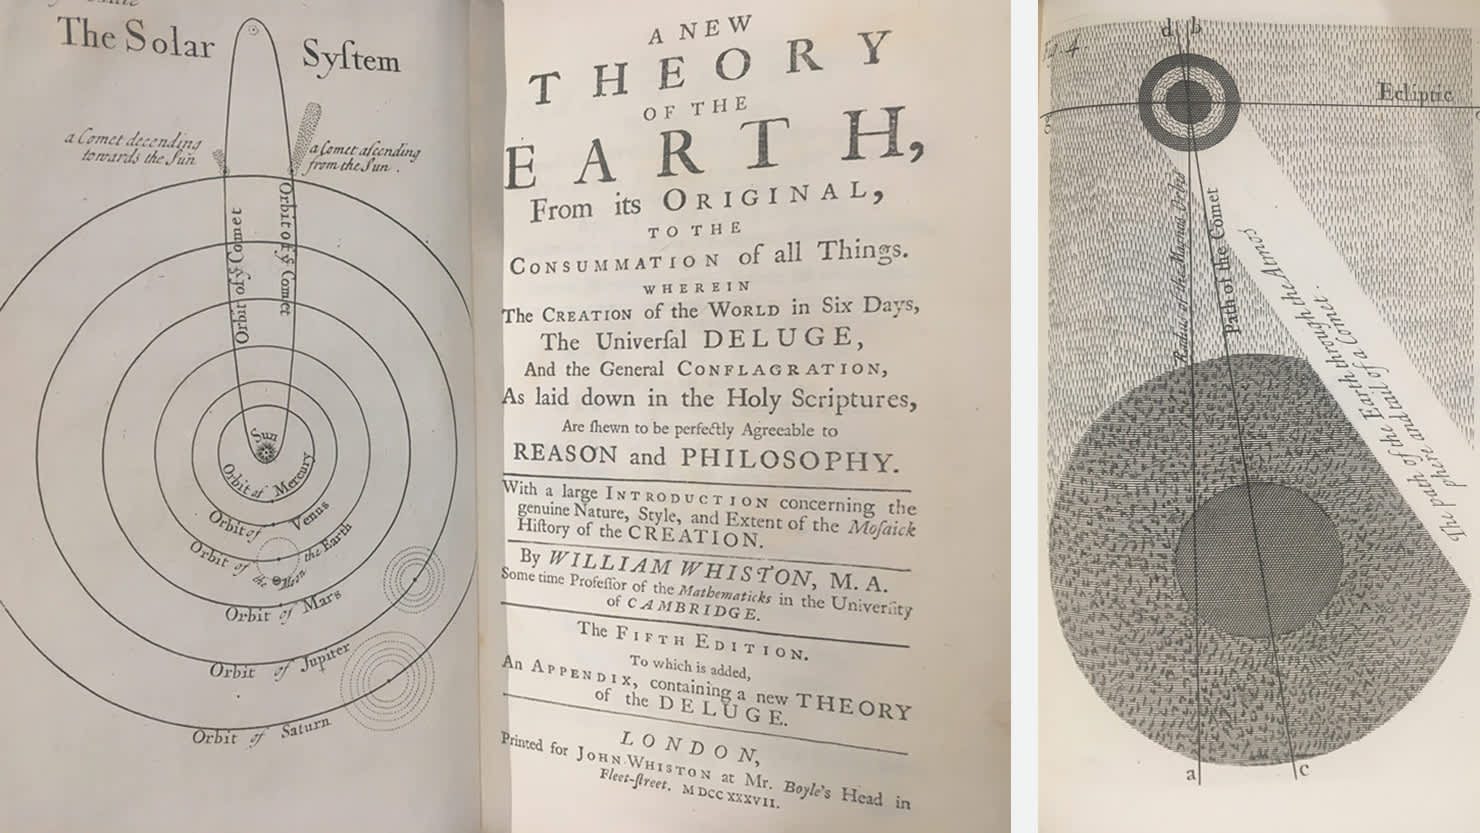 'A New Theory of the Earth' by William Whiston, 1737 from The Box's Cottonian Collection (CB489)